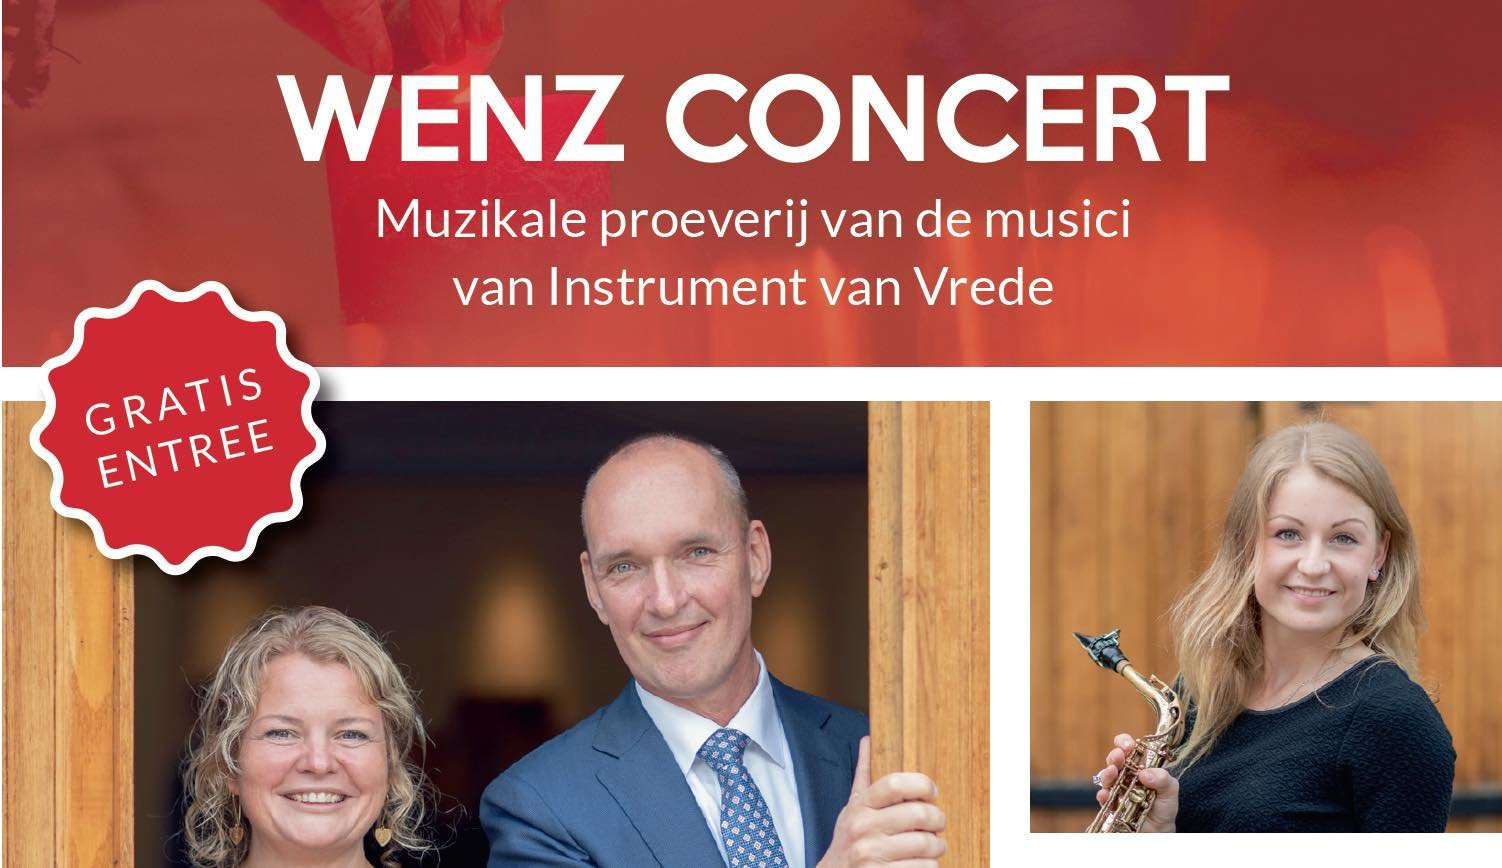 Wenz Concert in Epe